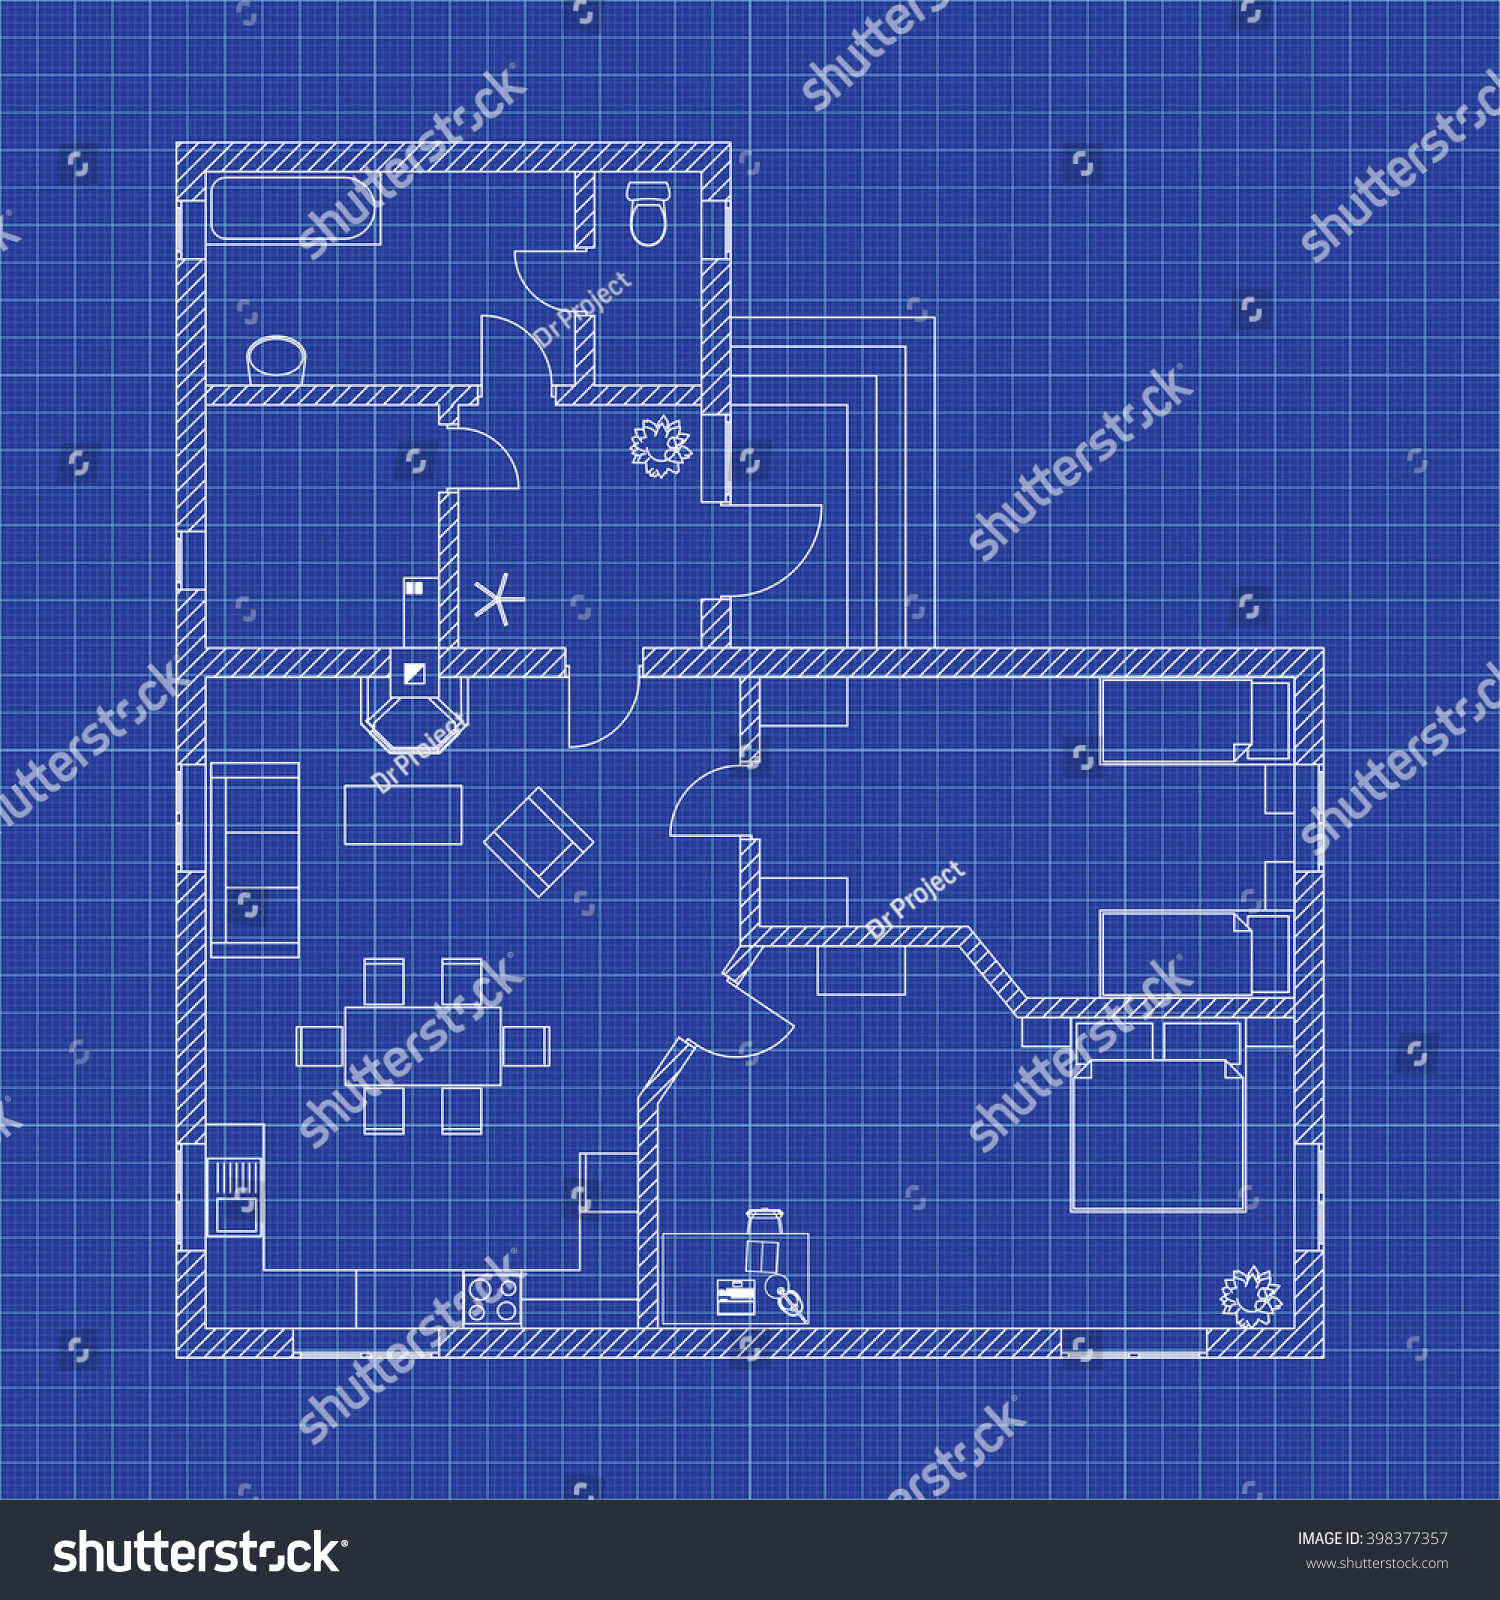 Blueprint floor plan modern apartment on vectores en stock 398377357 blueprint floor plan of a modern apartment on graph paper vector illustration malvernweather Choice Image